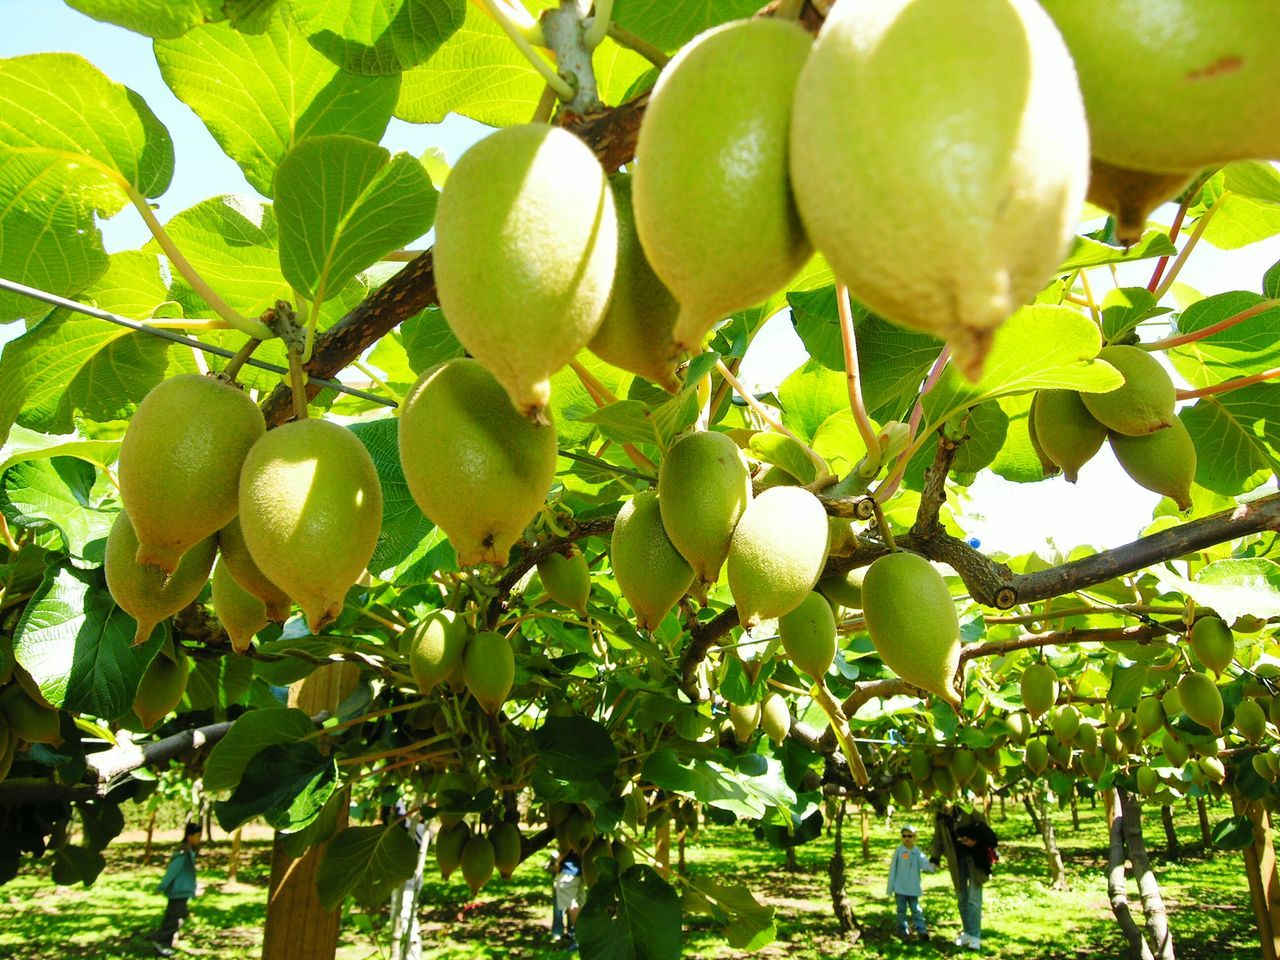 Fruit Green Color Tree Nature Growth Freshness Low Angle View Food And Drink No People Close-up Healthy Eating Food Outdoors Beauty In Nature Day Kiwifruit Agriculture Kiwifruit Vine Kiwifruit Orchard